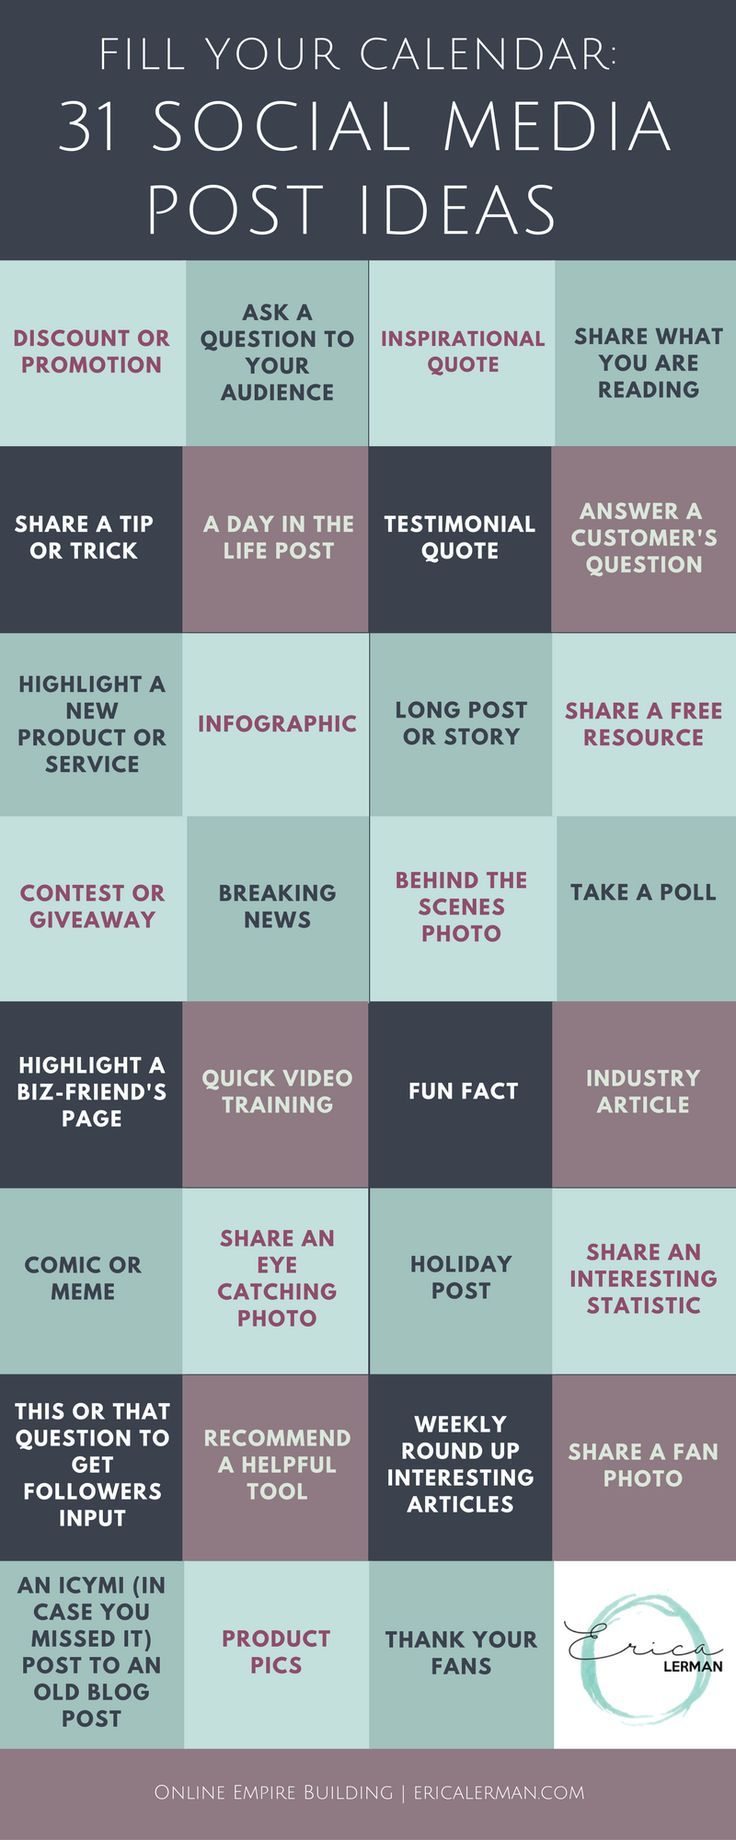 31 days worth of social media post ideas.  #Social #Media